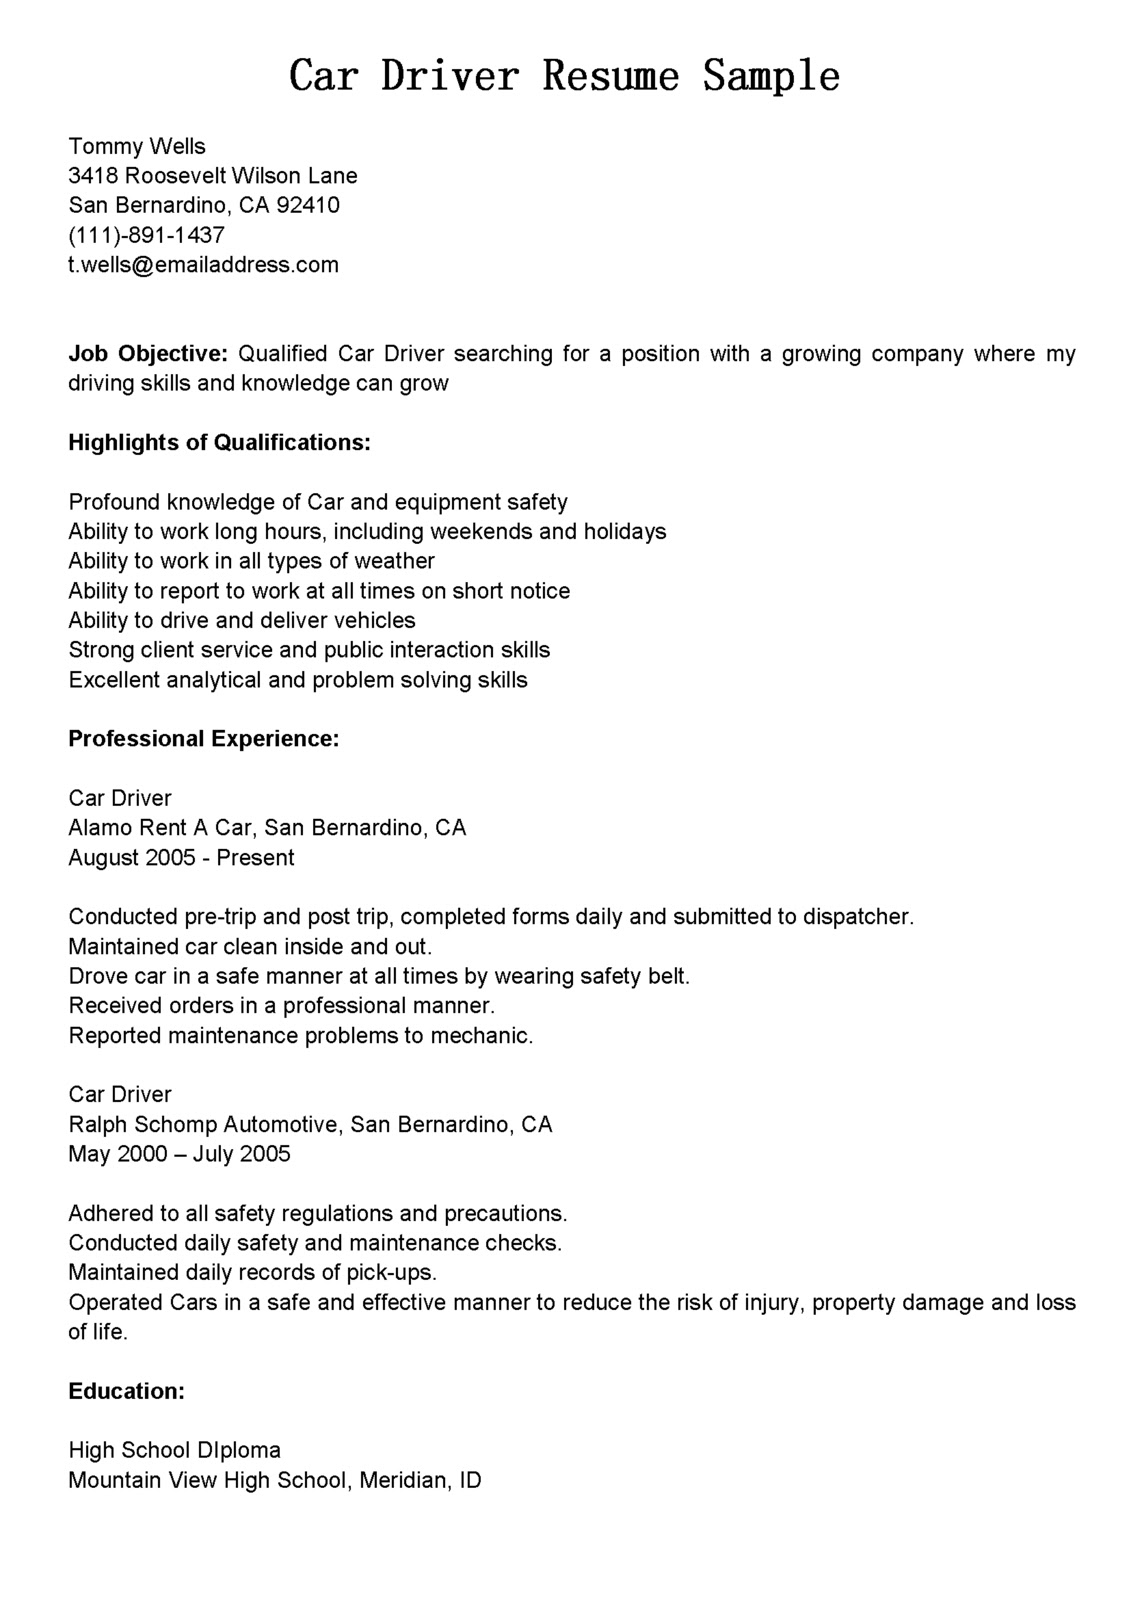 cheap cv writing for hire ca   original content